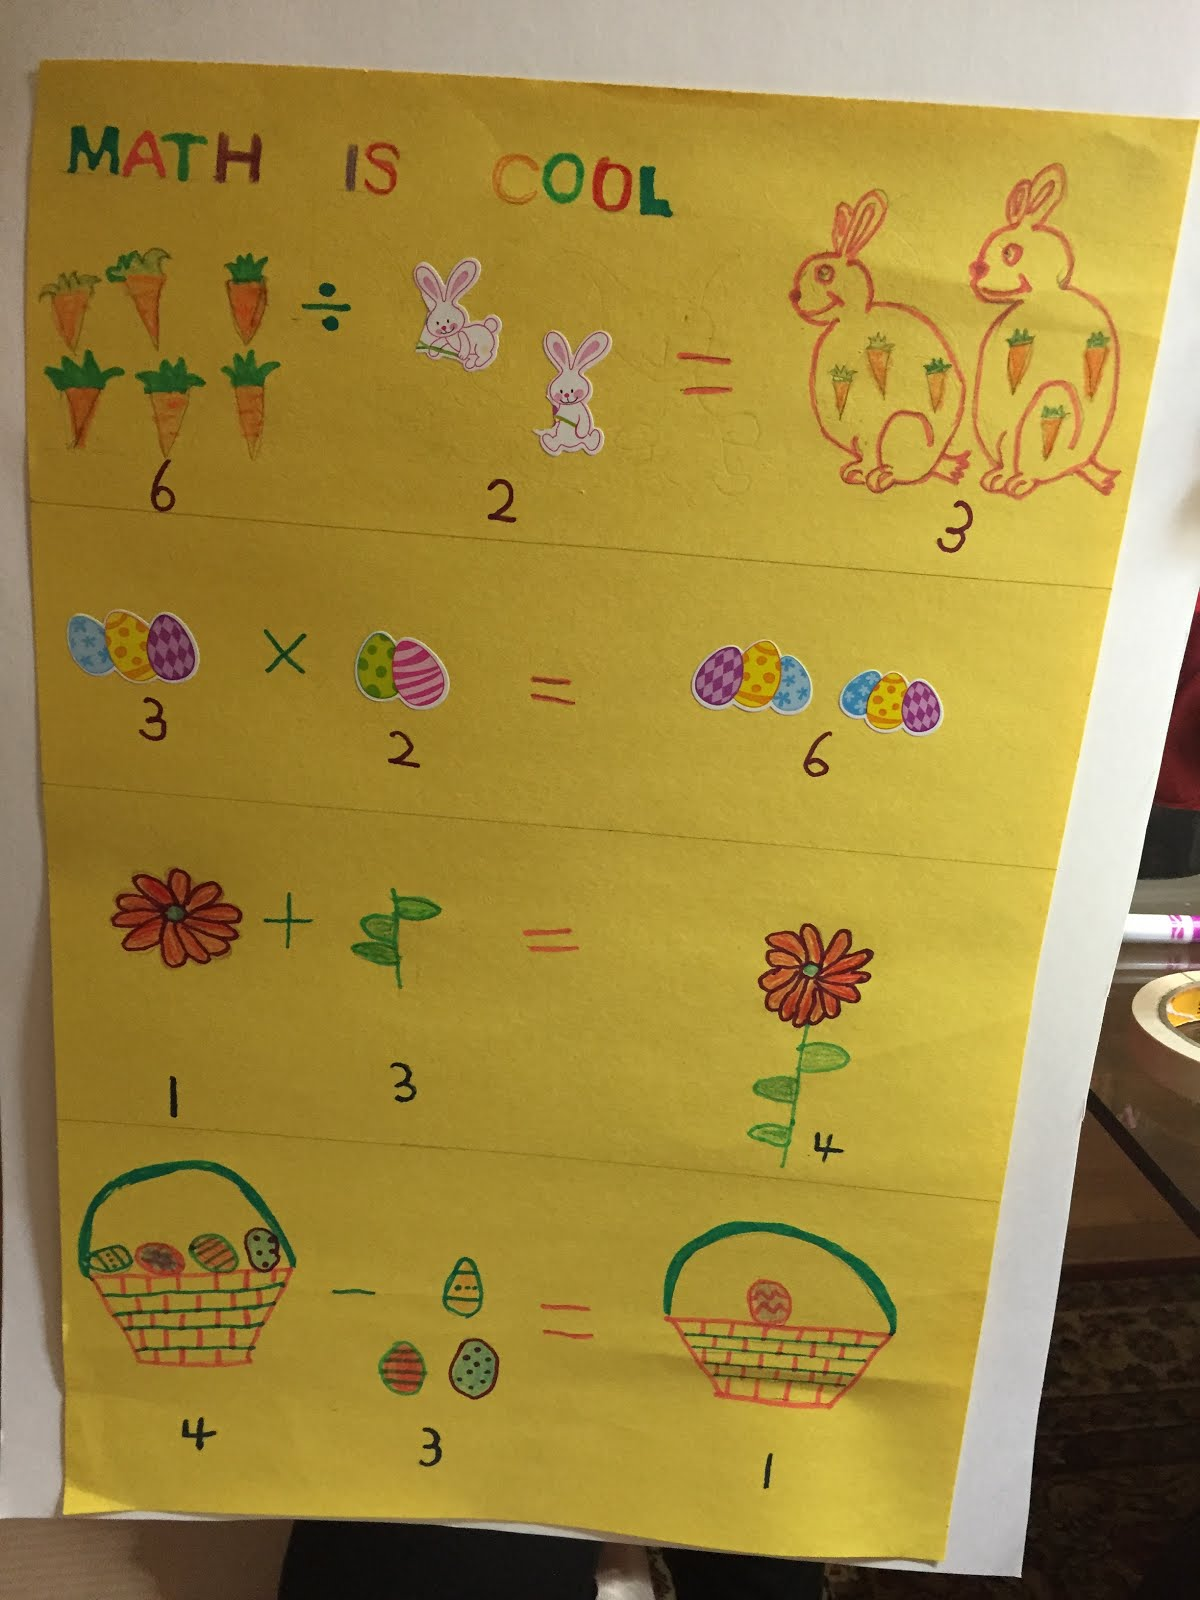 Rhea sony anand rsm project opposite operations and how multiplication and division are opposites some easter stickers combined with my art work resulted in an easter math fun nvjuhfo Images